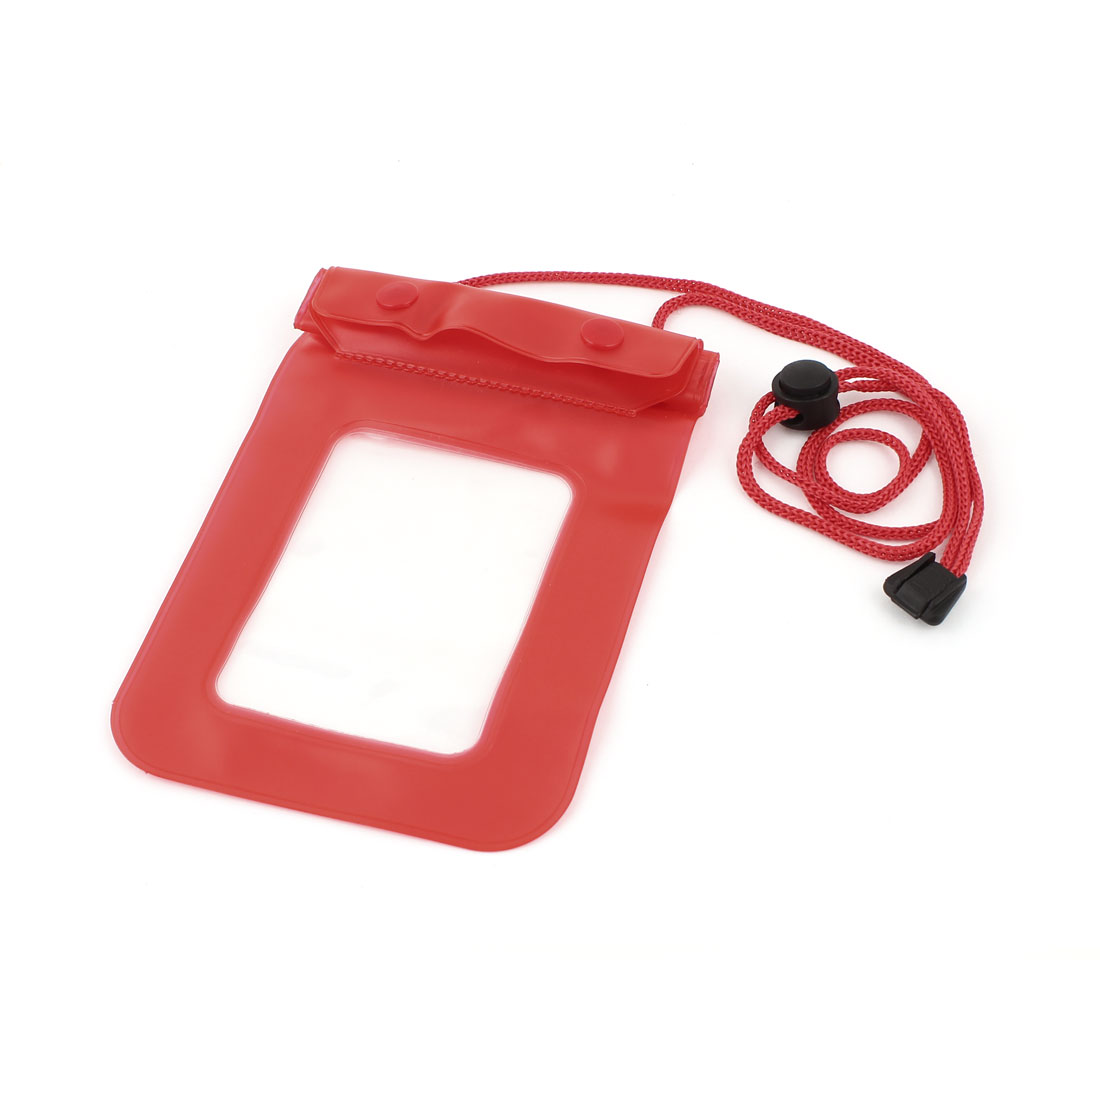 115mmx210mm Soft Plastic Water Proof Case Bag Cover Red Clear for Mobile Phone